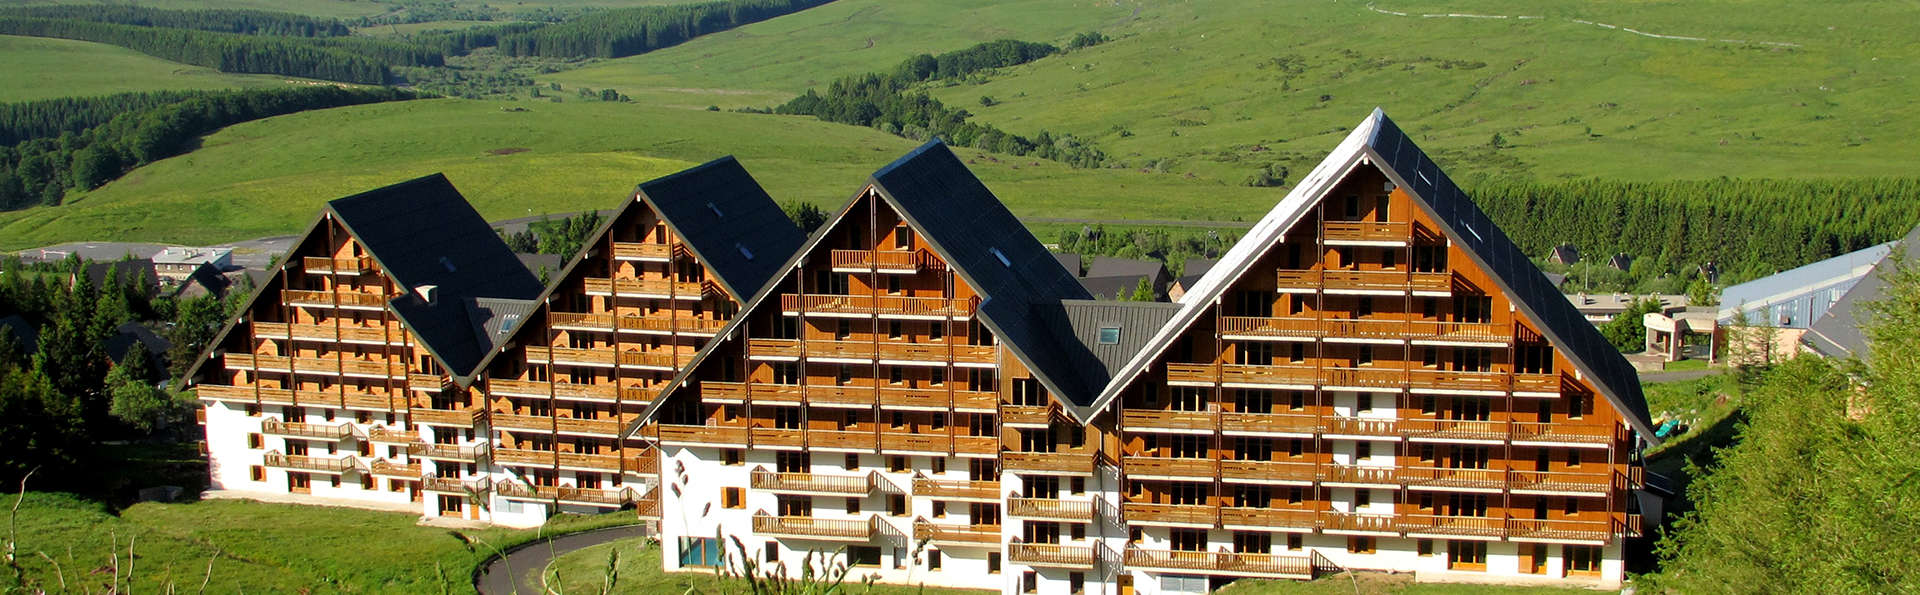 Chalets du Sancy - Edit_Front.jpg